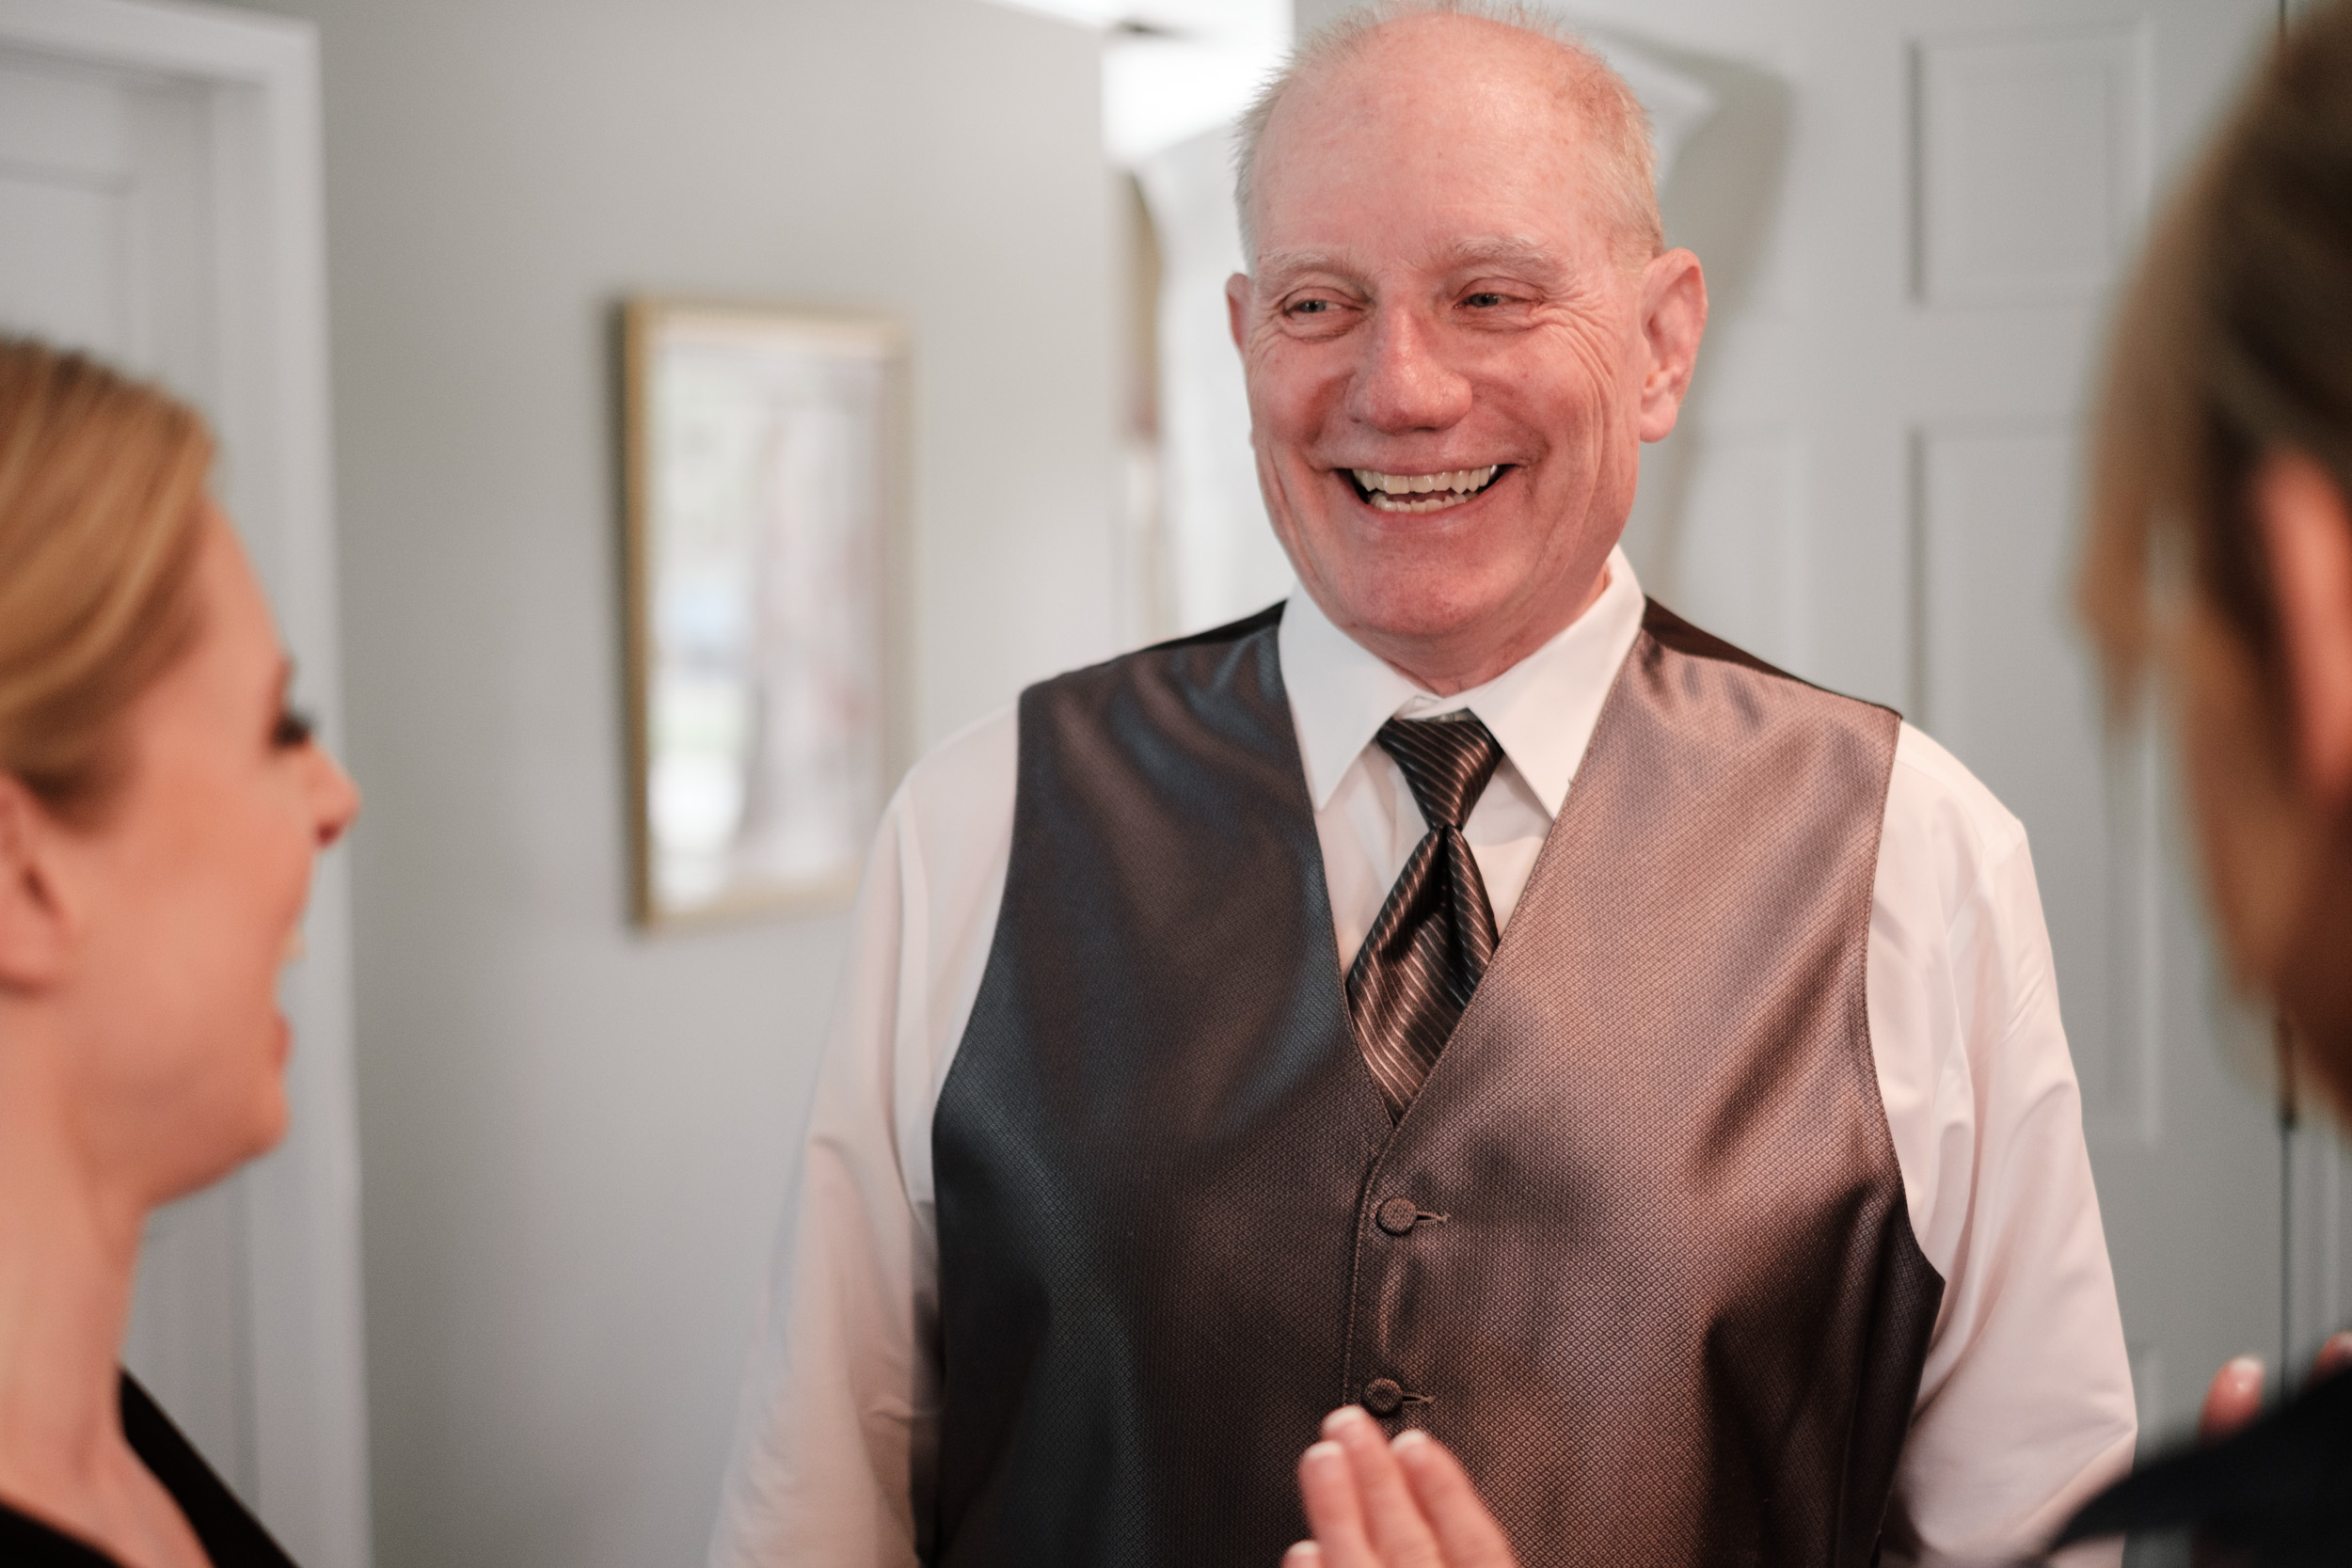 father of bride smiling on wedding day